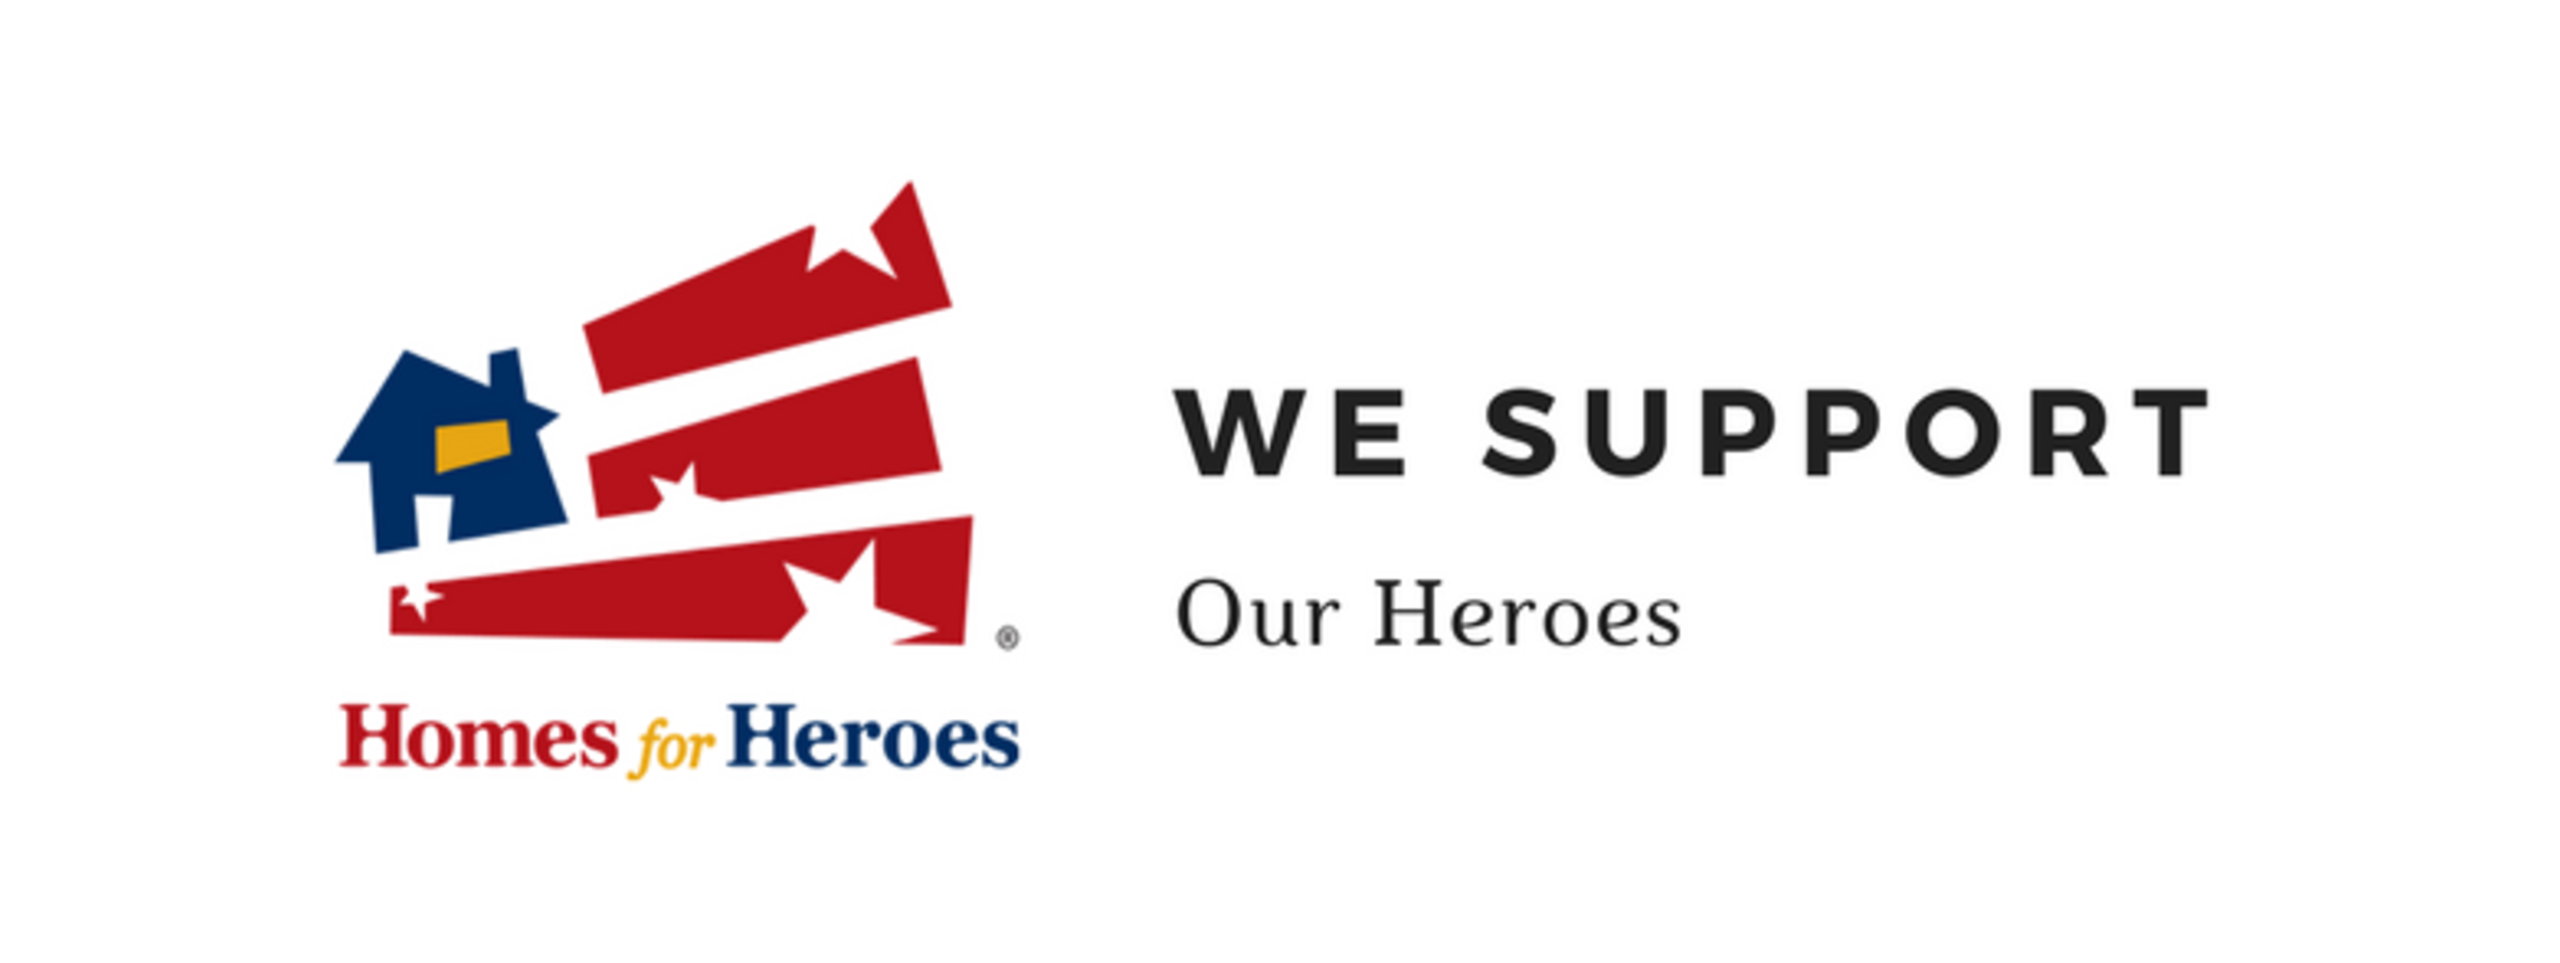 Our Heroes Rock!